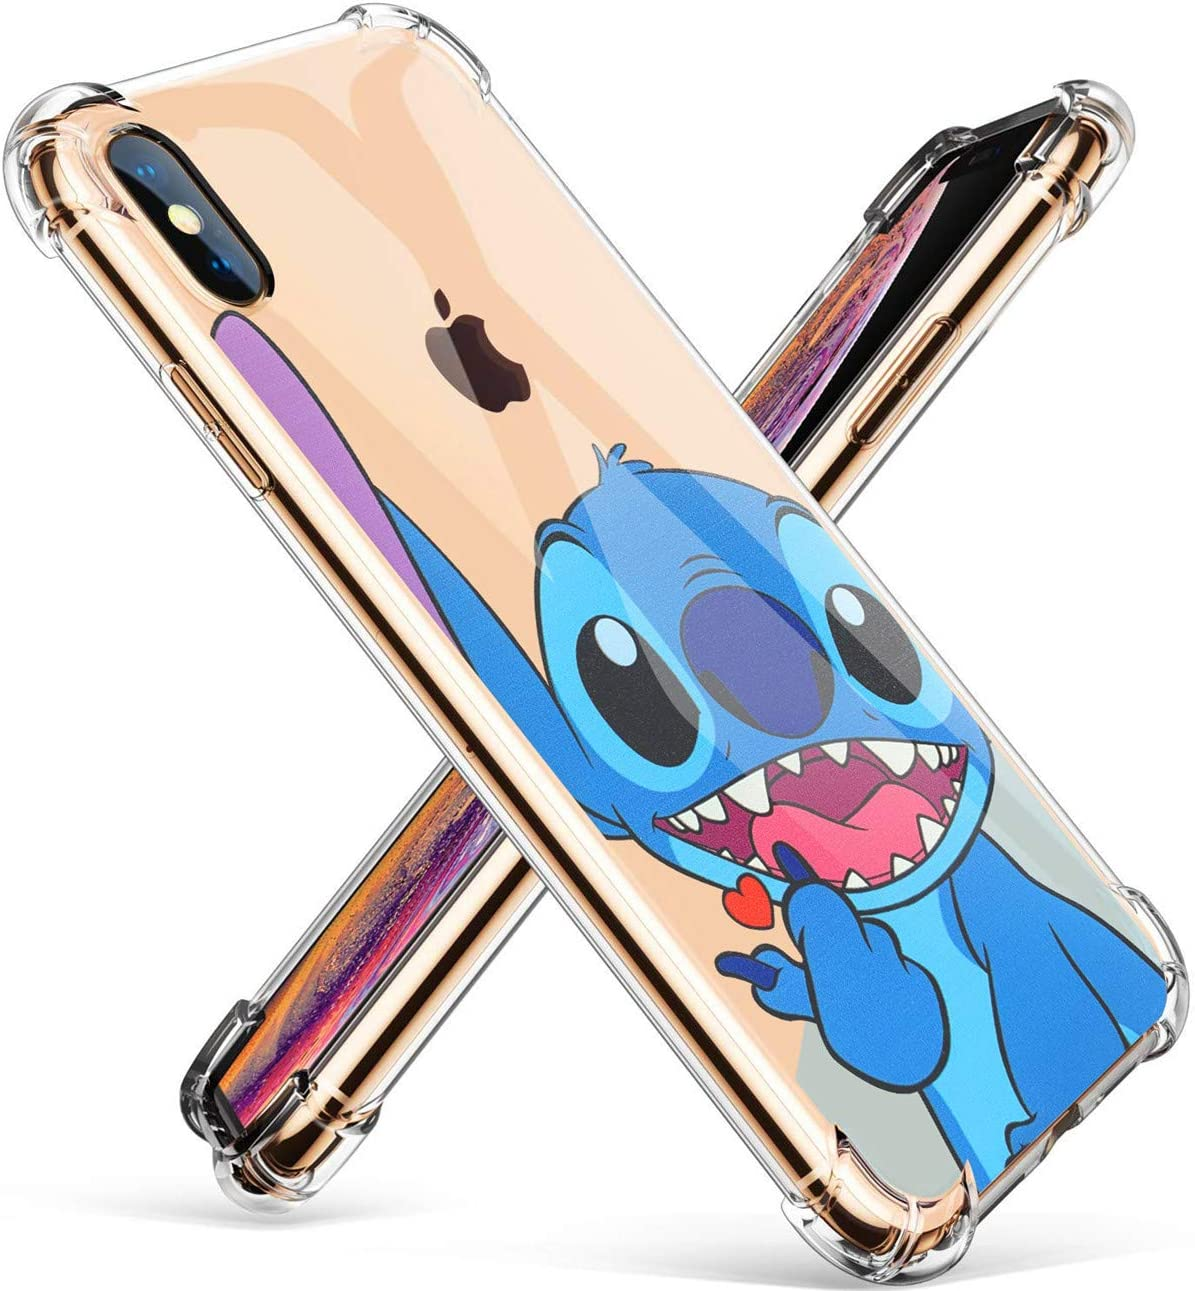 "Logee Sweet Stitch TPU Cute Cartoon Clear Case for iPhone X/iPhone Xs 5.8"",Fun Kawaii Animal Soft Protective Shockproof Cover,Ultra-Thin Funny Character Cases for Kids Teens Girls Boys (iPhoneXs)"